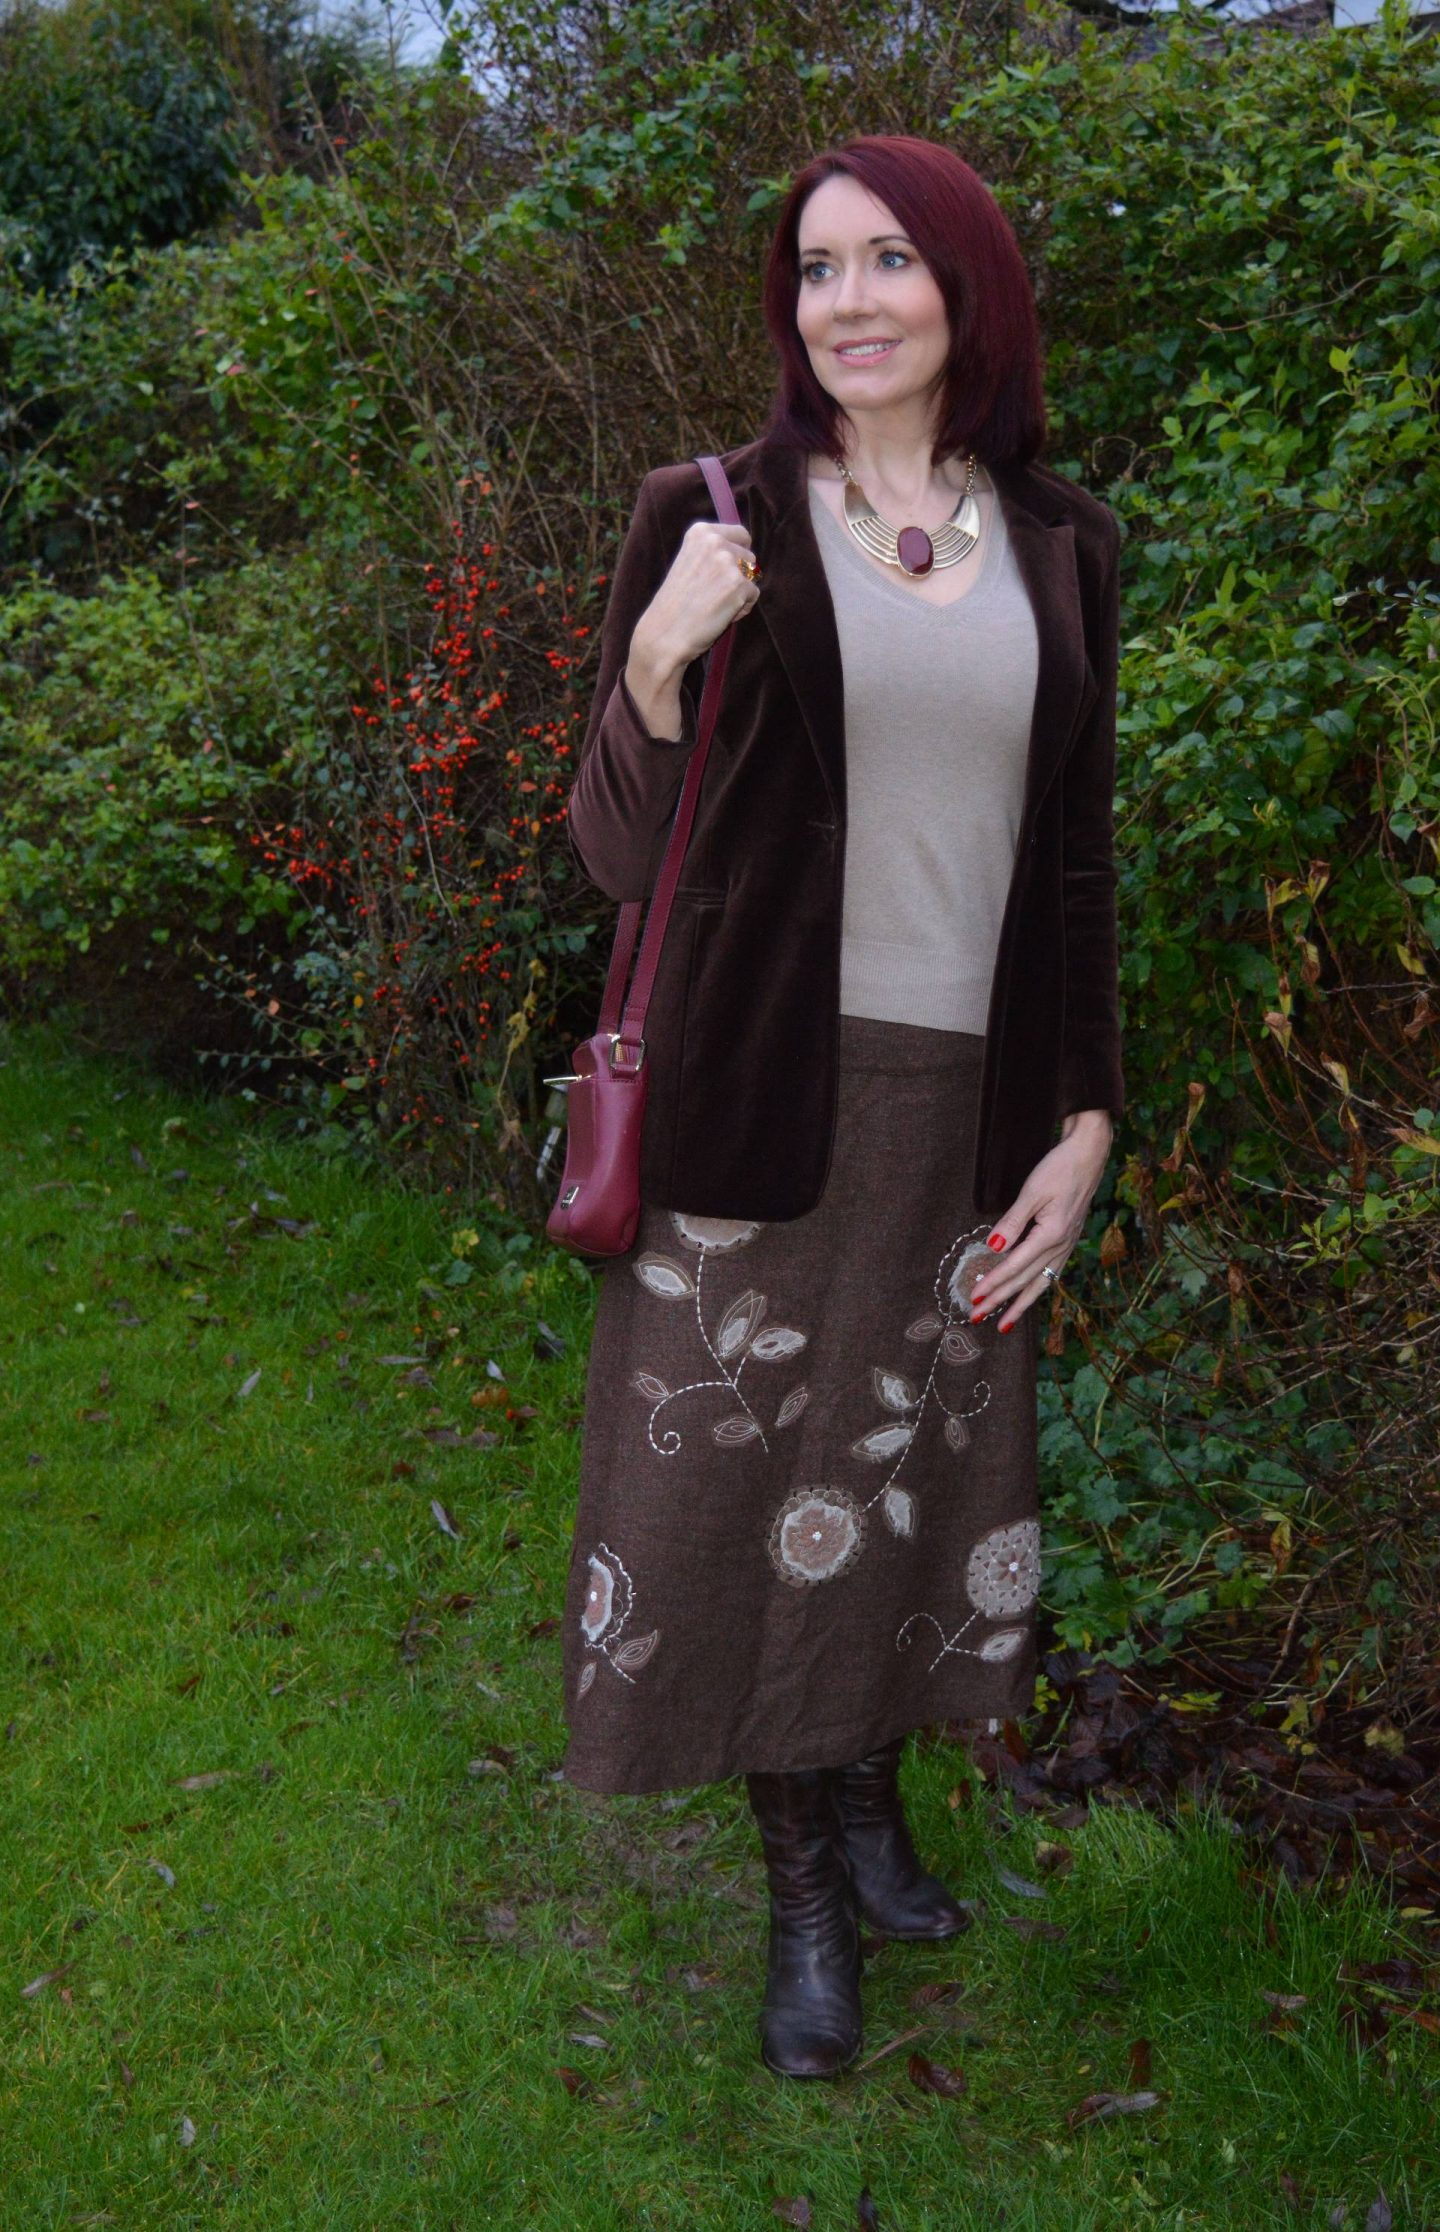 Shades of Brown: December's Match Made in Seven